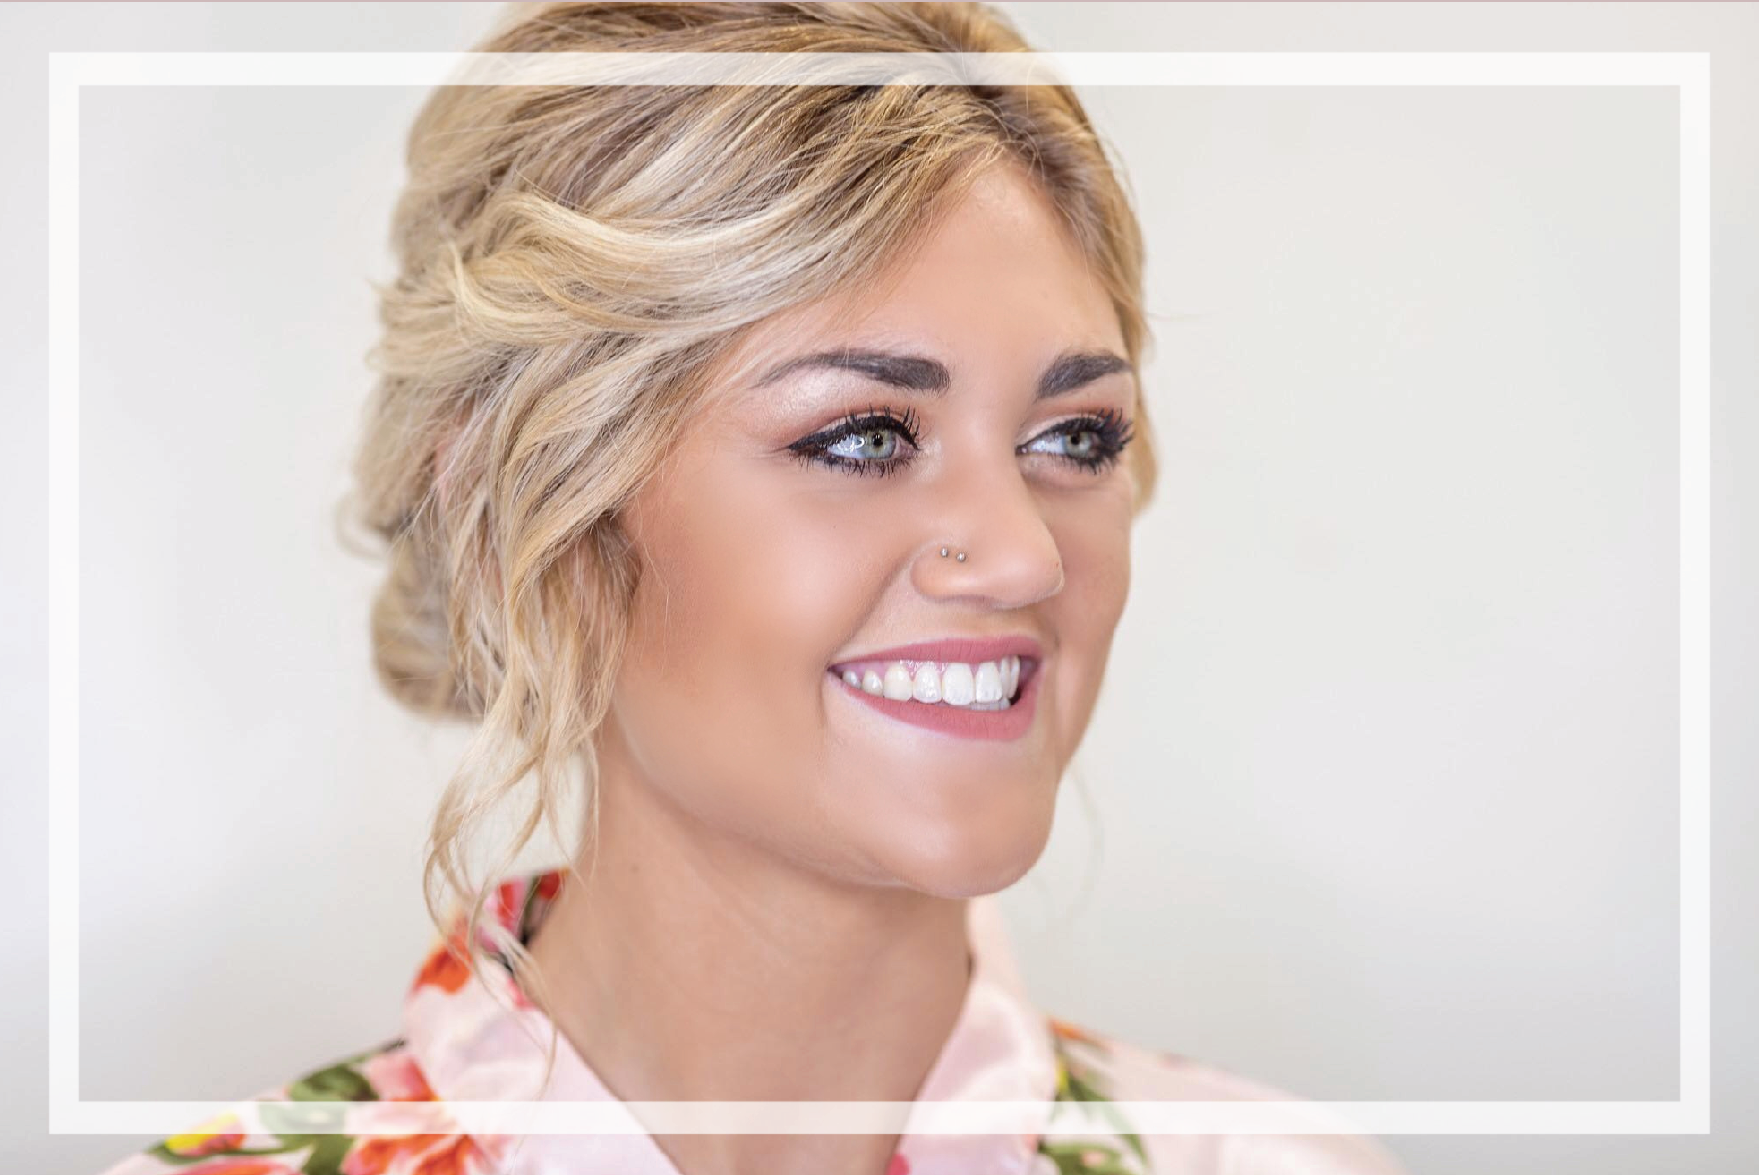 In House - We give you the opportunity to reserve the entire salon, while we provide you with complimentary mimosas and a light brunch, matching floral robes for you and your girls, a private changing room and the perfect wedding day play list.